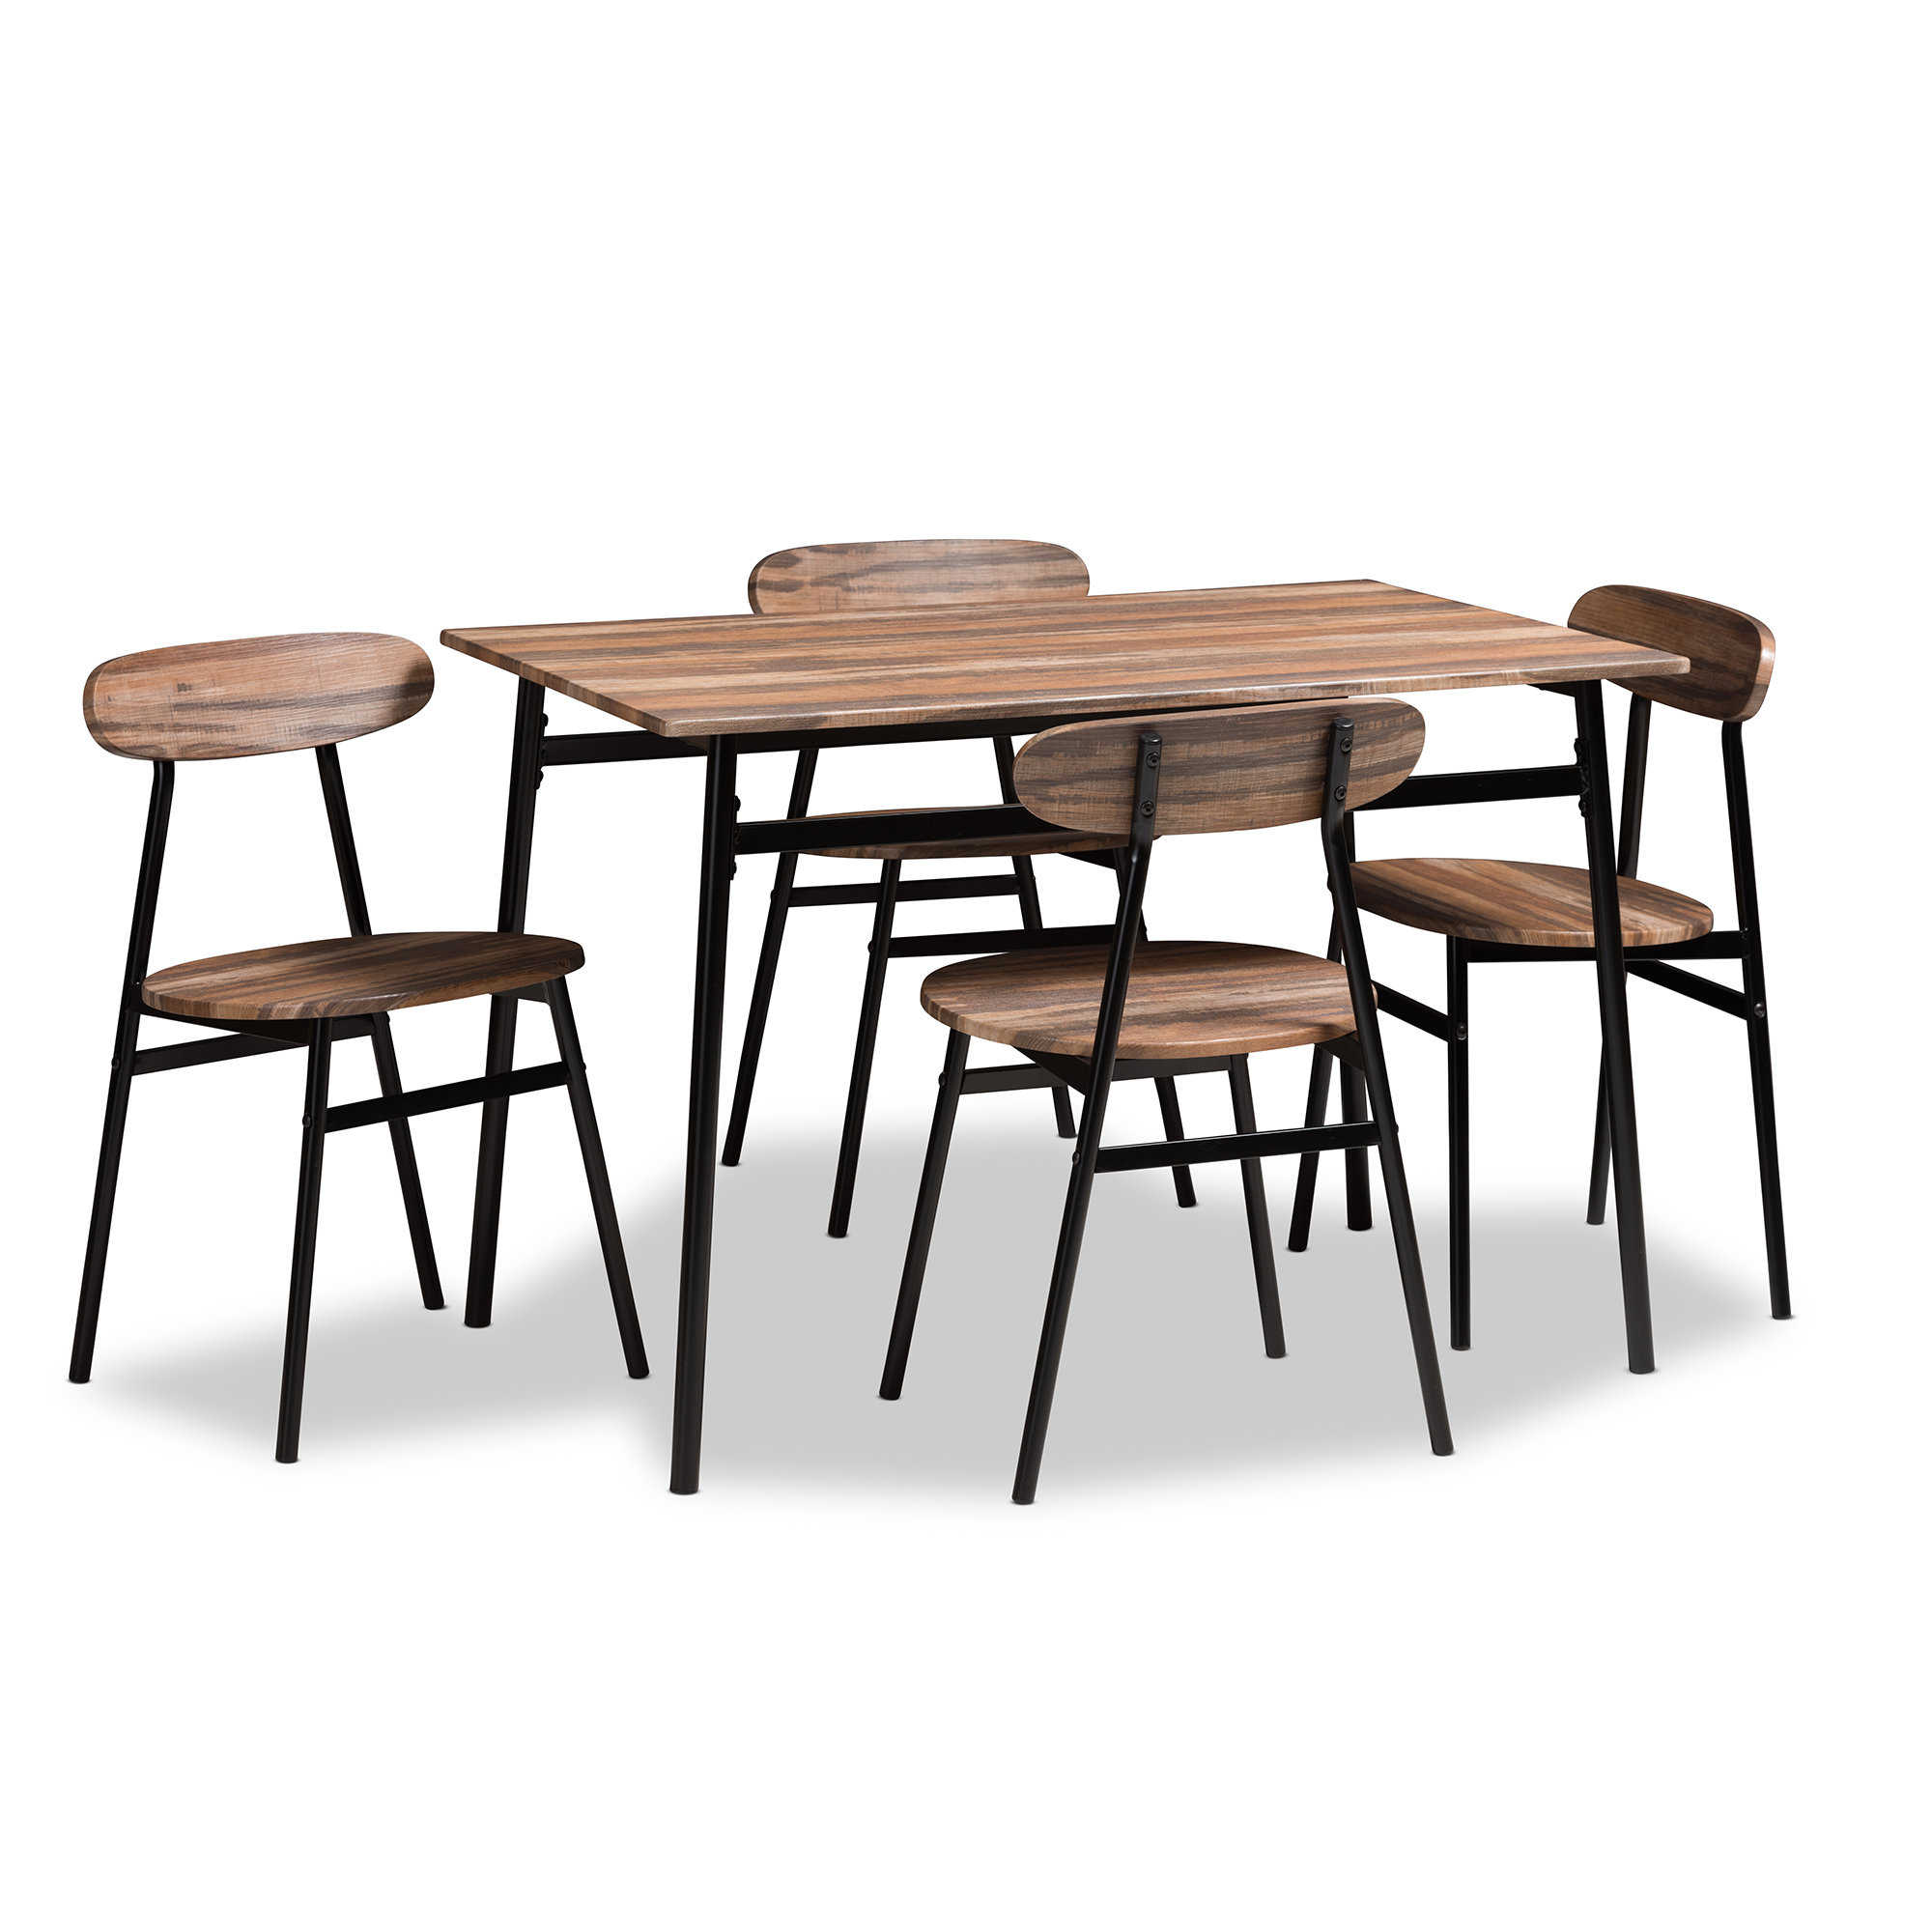 Calla 5 Piece Dining Sets Intended For Most Recently Released Telauges 5 Piece Dining Set (View 6 of 20)